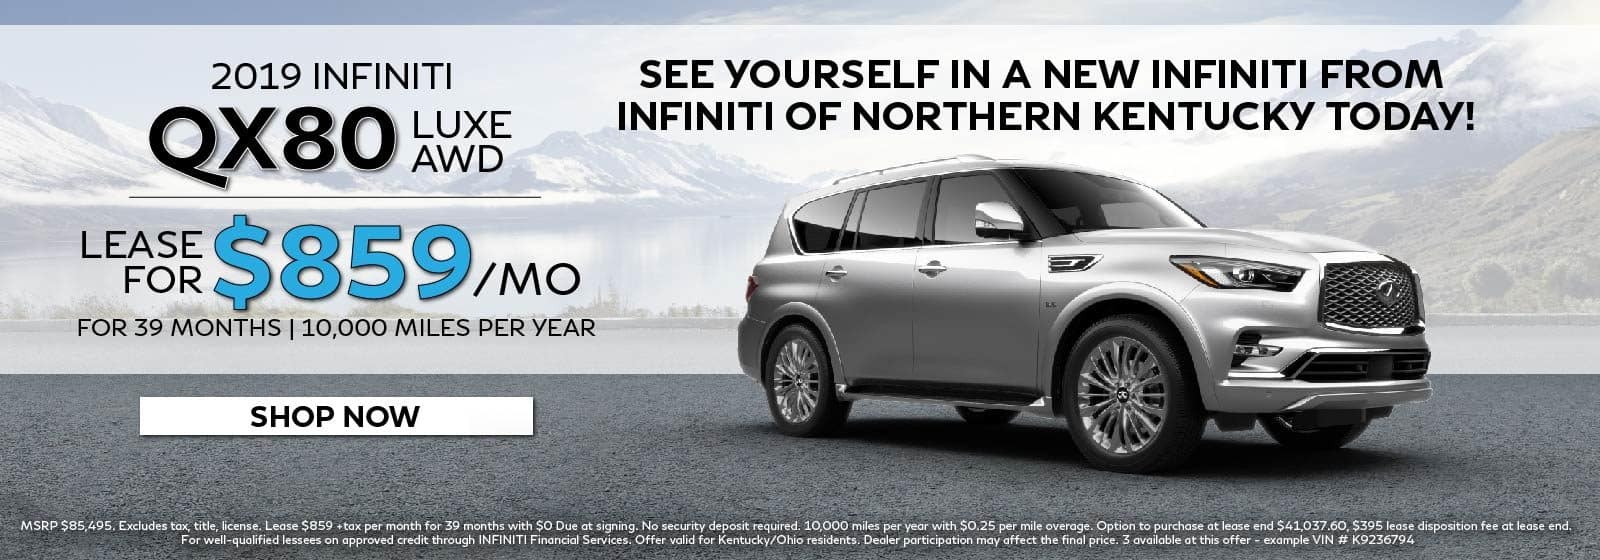 2020 QX80 lease offer. Lease for $859 per month for 39 months and 10,000 miles a year. MSRP $85,495. Restrictions may apply. See retailer for complete details. Offer ends 3/31/2020.